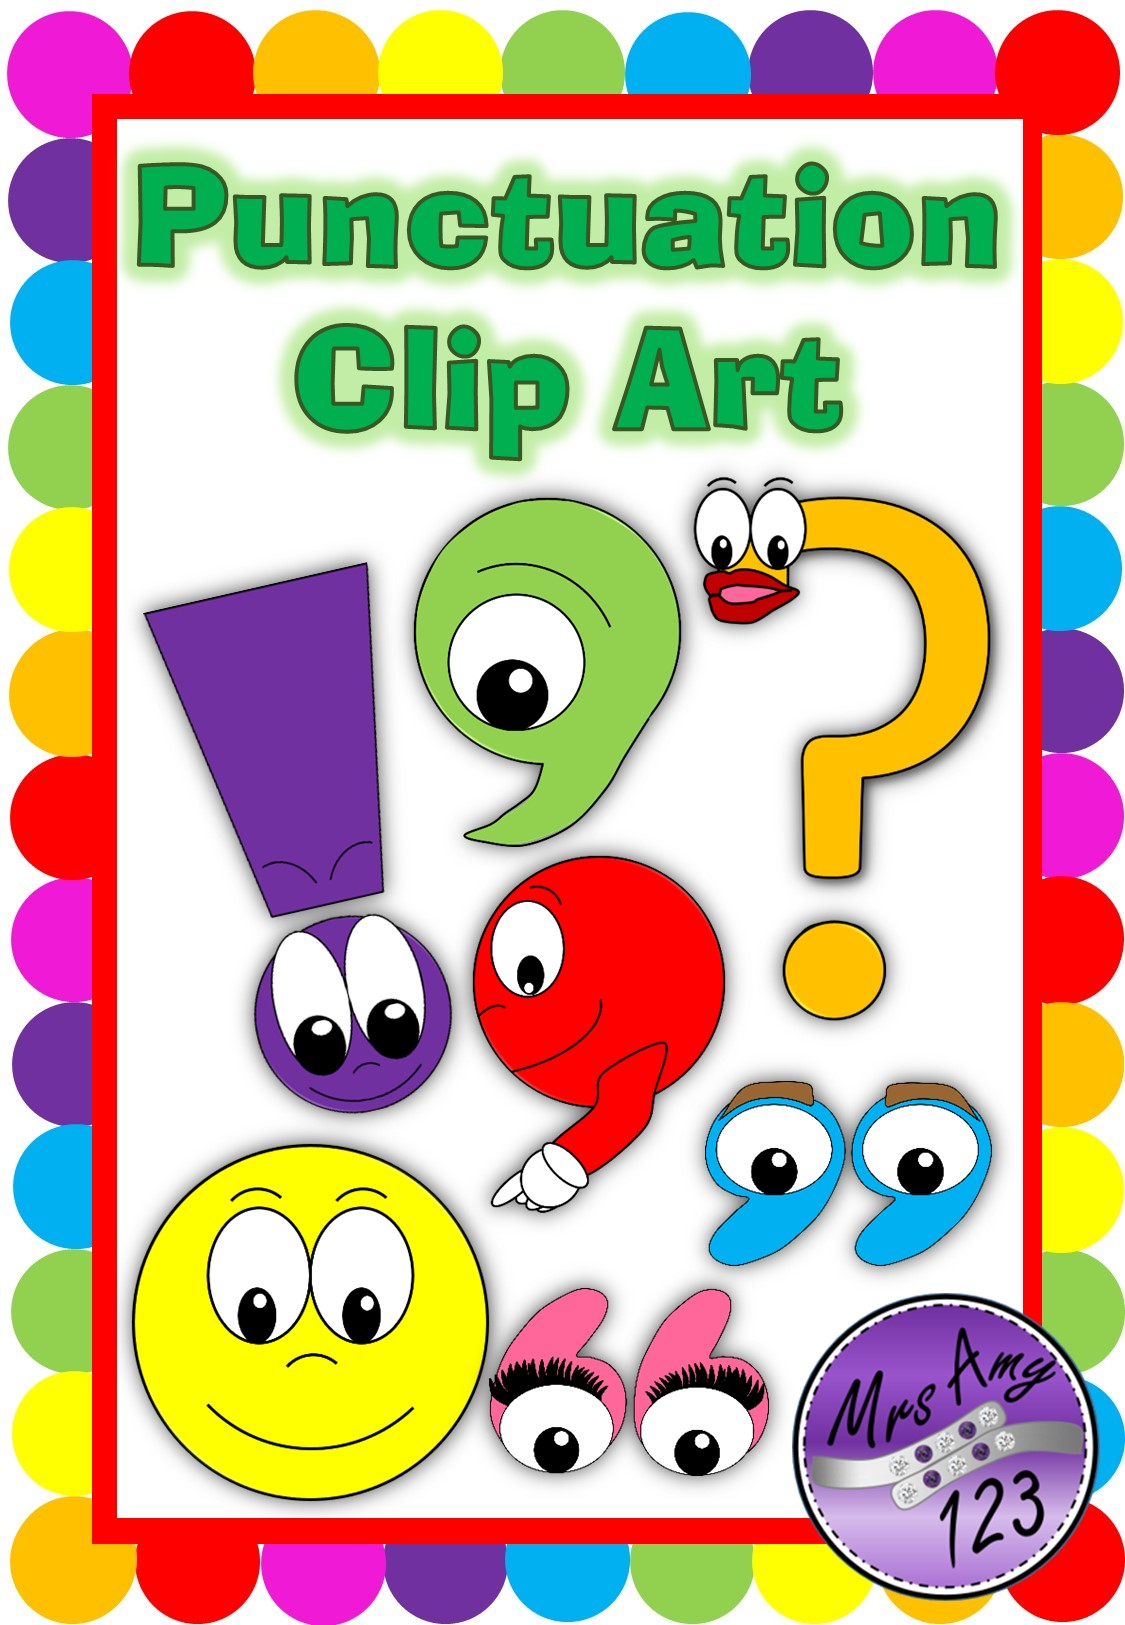 Punctuation period clipart images.